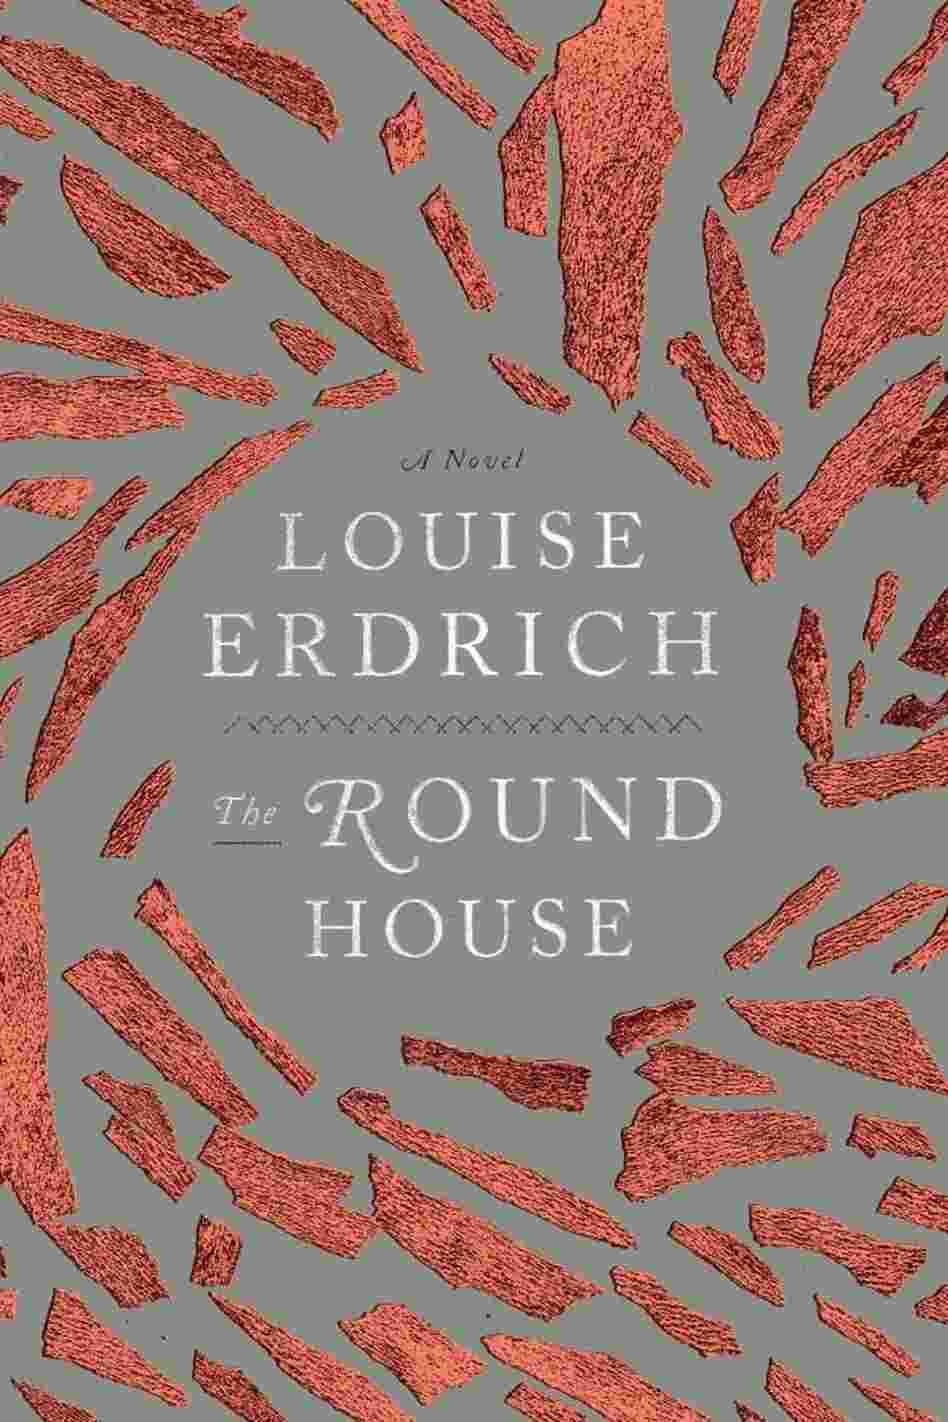 Image result for book cover round house erdrich